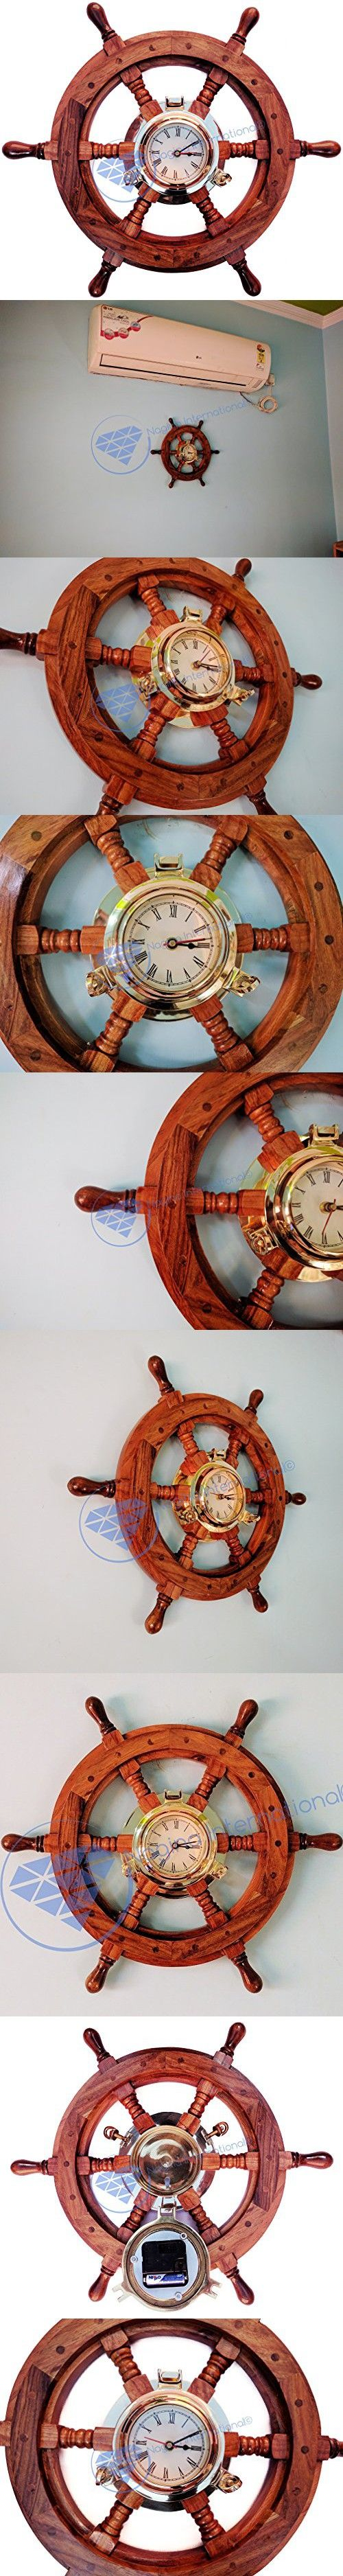 725 best nautical home decor images on pinterest nautical blue sailors premium home decor times clock nautical brass porthole ships wheel deluxe office decor amipublicfo Images